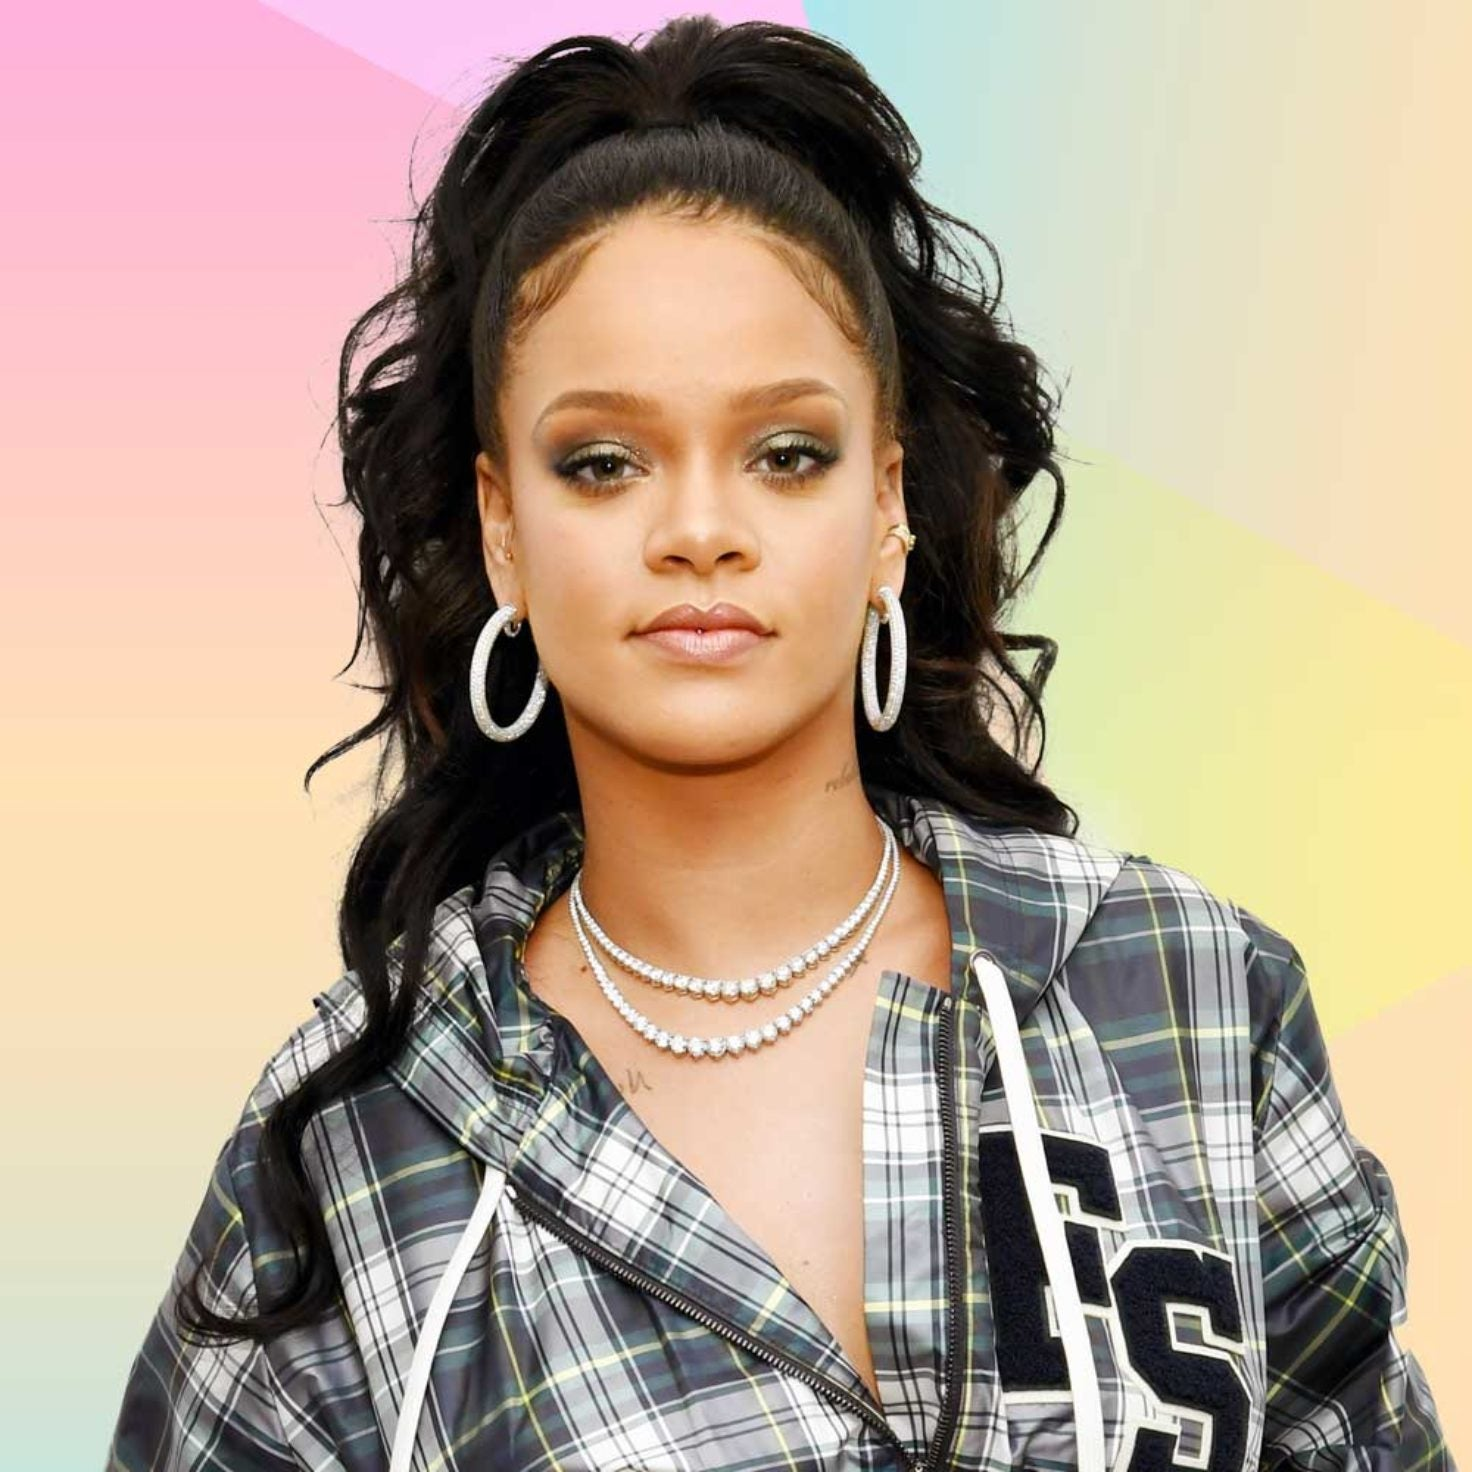 0400e47d49d1 Thanks To Rihanna's Throwback Style, We're Tapping Into The '90s This  Summer. When it comes to fashion ...